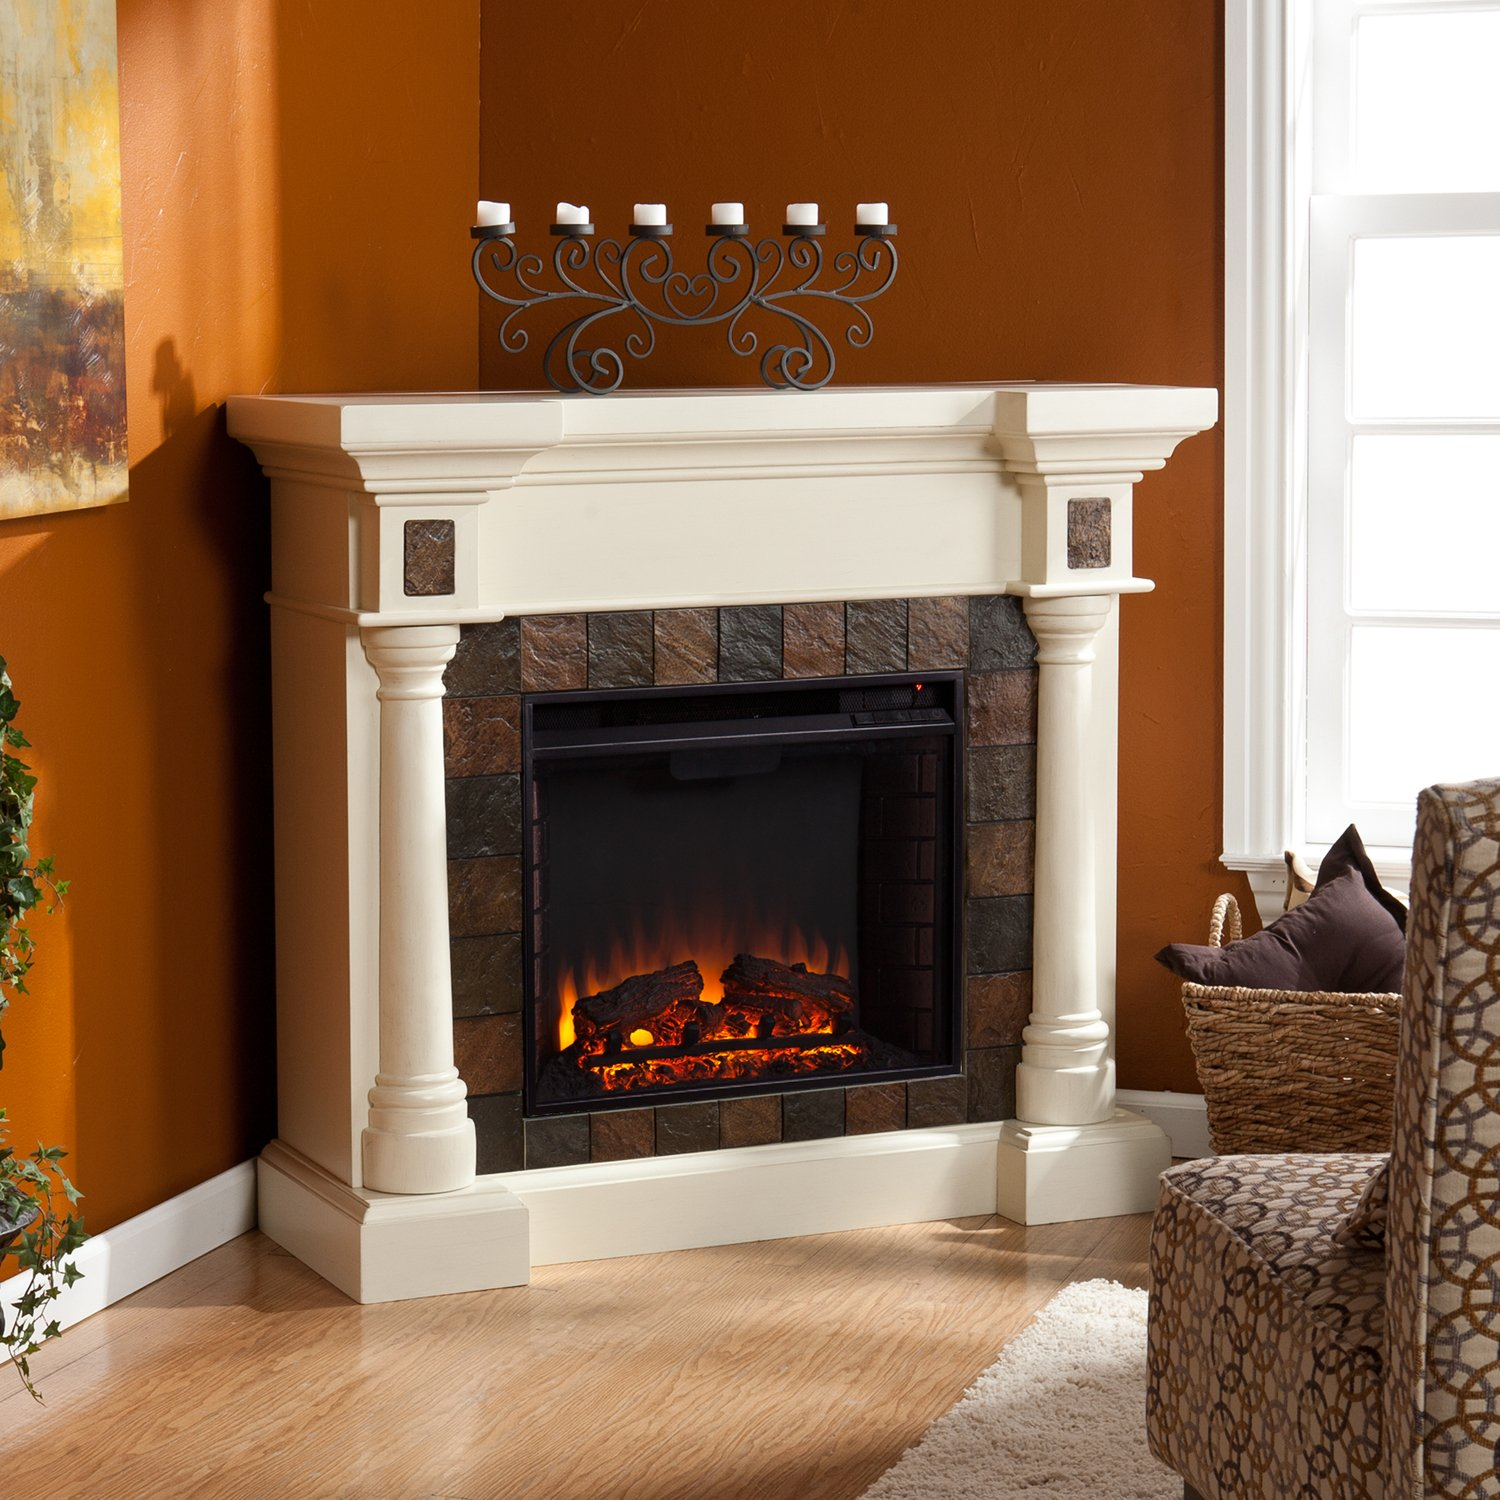 Amazon.com: Faux Slate Convertible Corner or Flat Wall Electric Fireplace - Ivory: Home & Kitchen